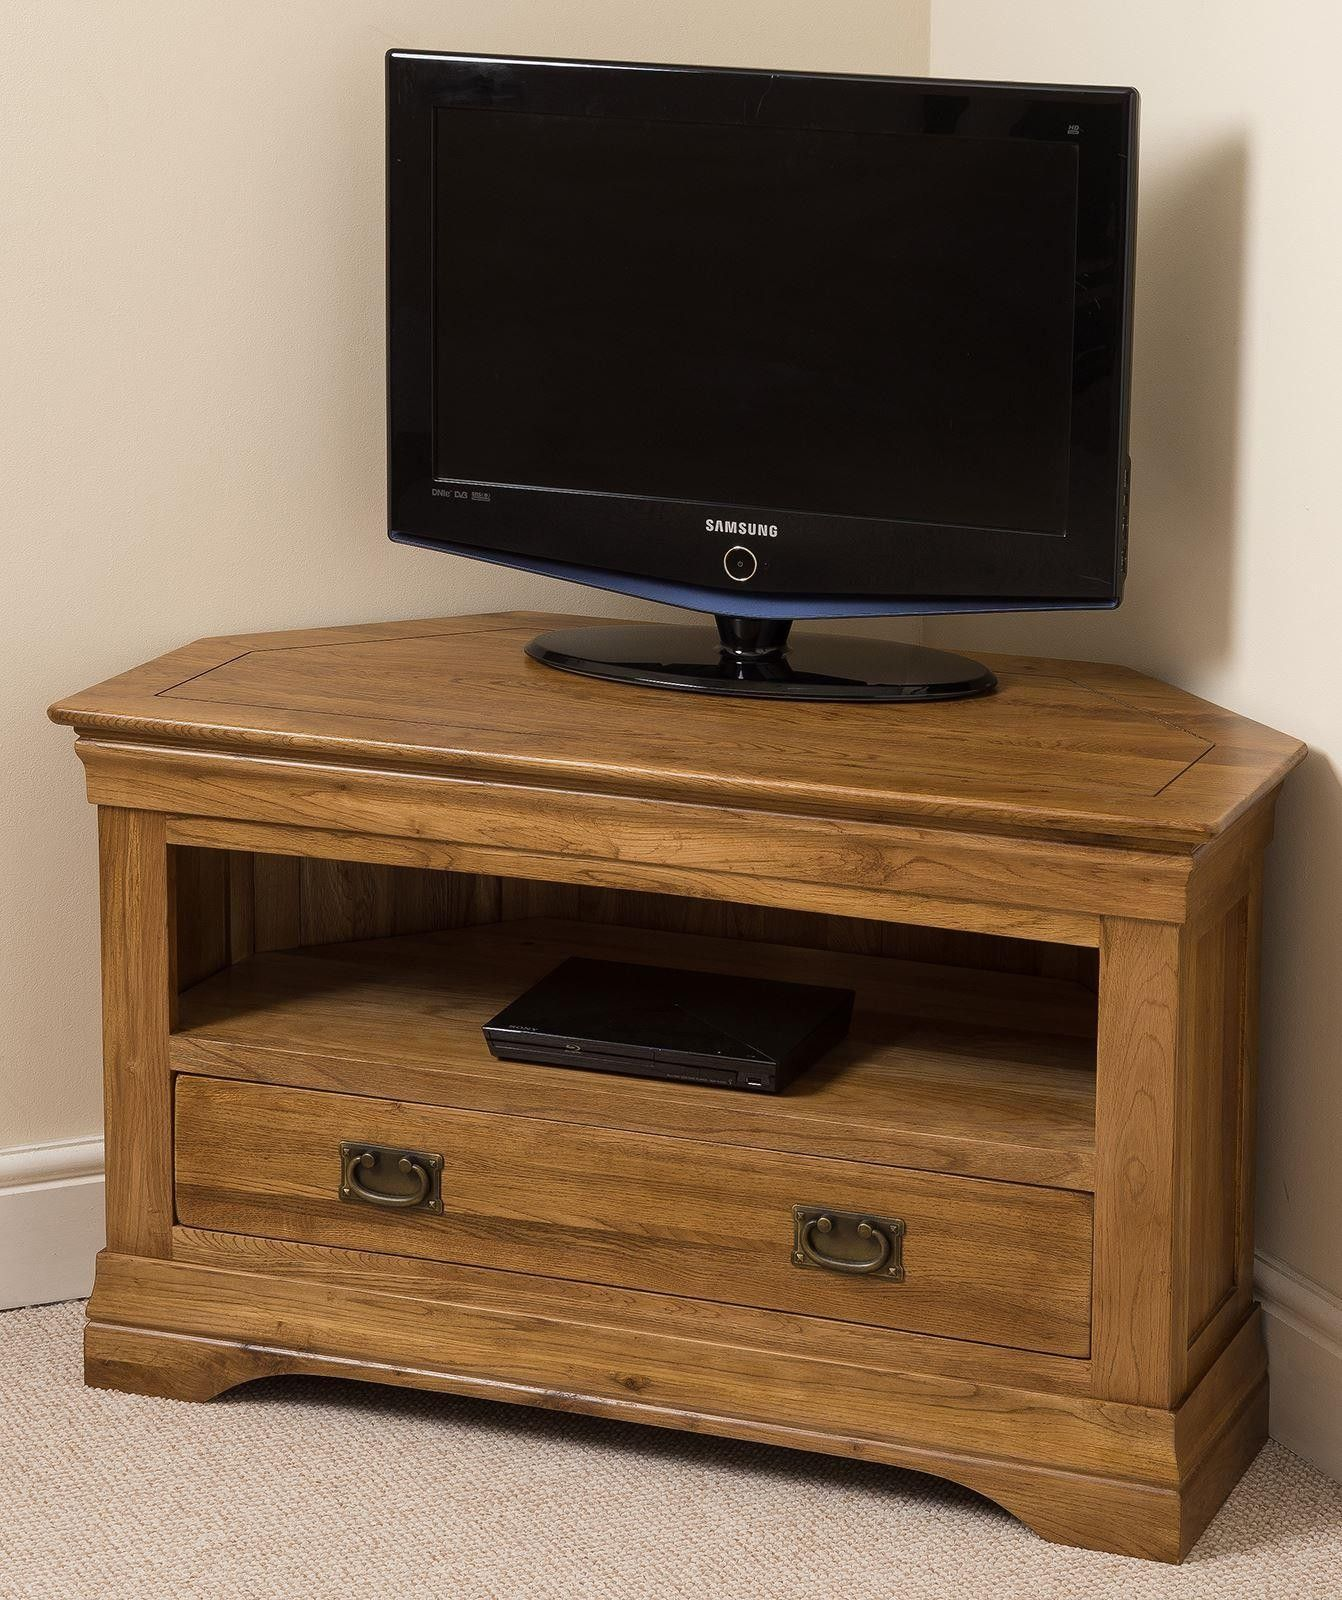 French Chateau Rustic Solid Oak Tv Corner Cabinet Rustic Tv Stand Entertainment Wall Units Oak Furniture Living Room